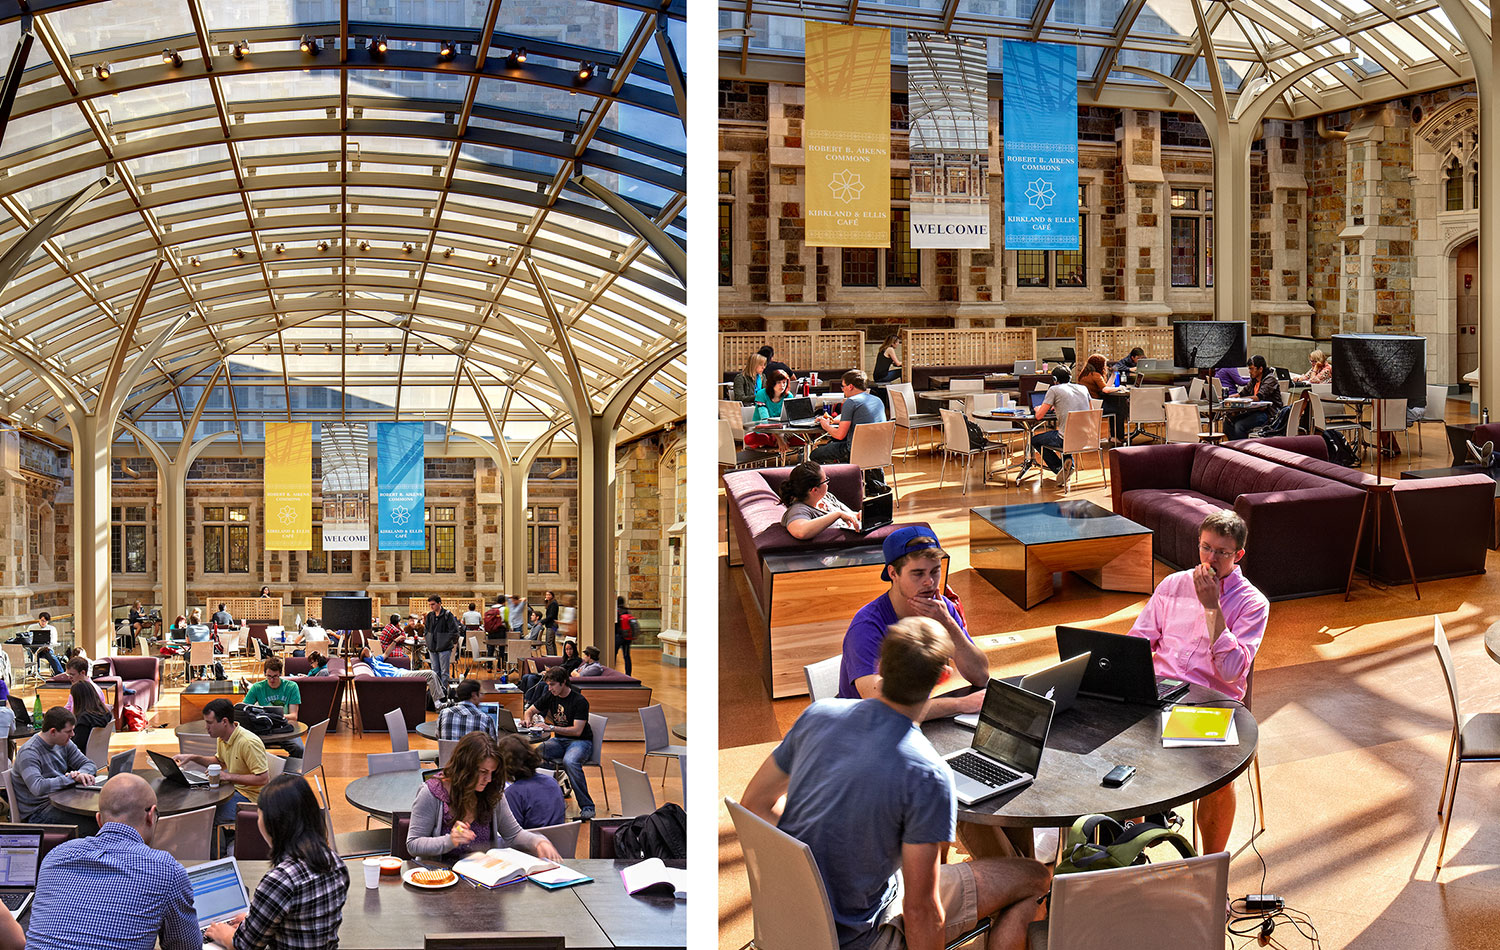 UofM_Law_School_Commons_AM_Int-072-fused-dc2.jpg